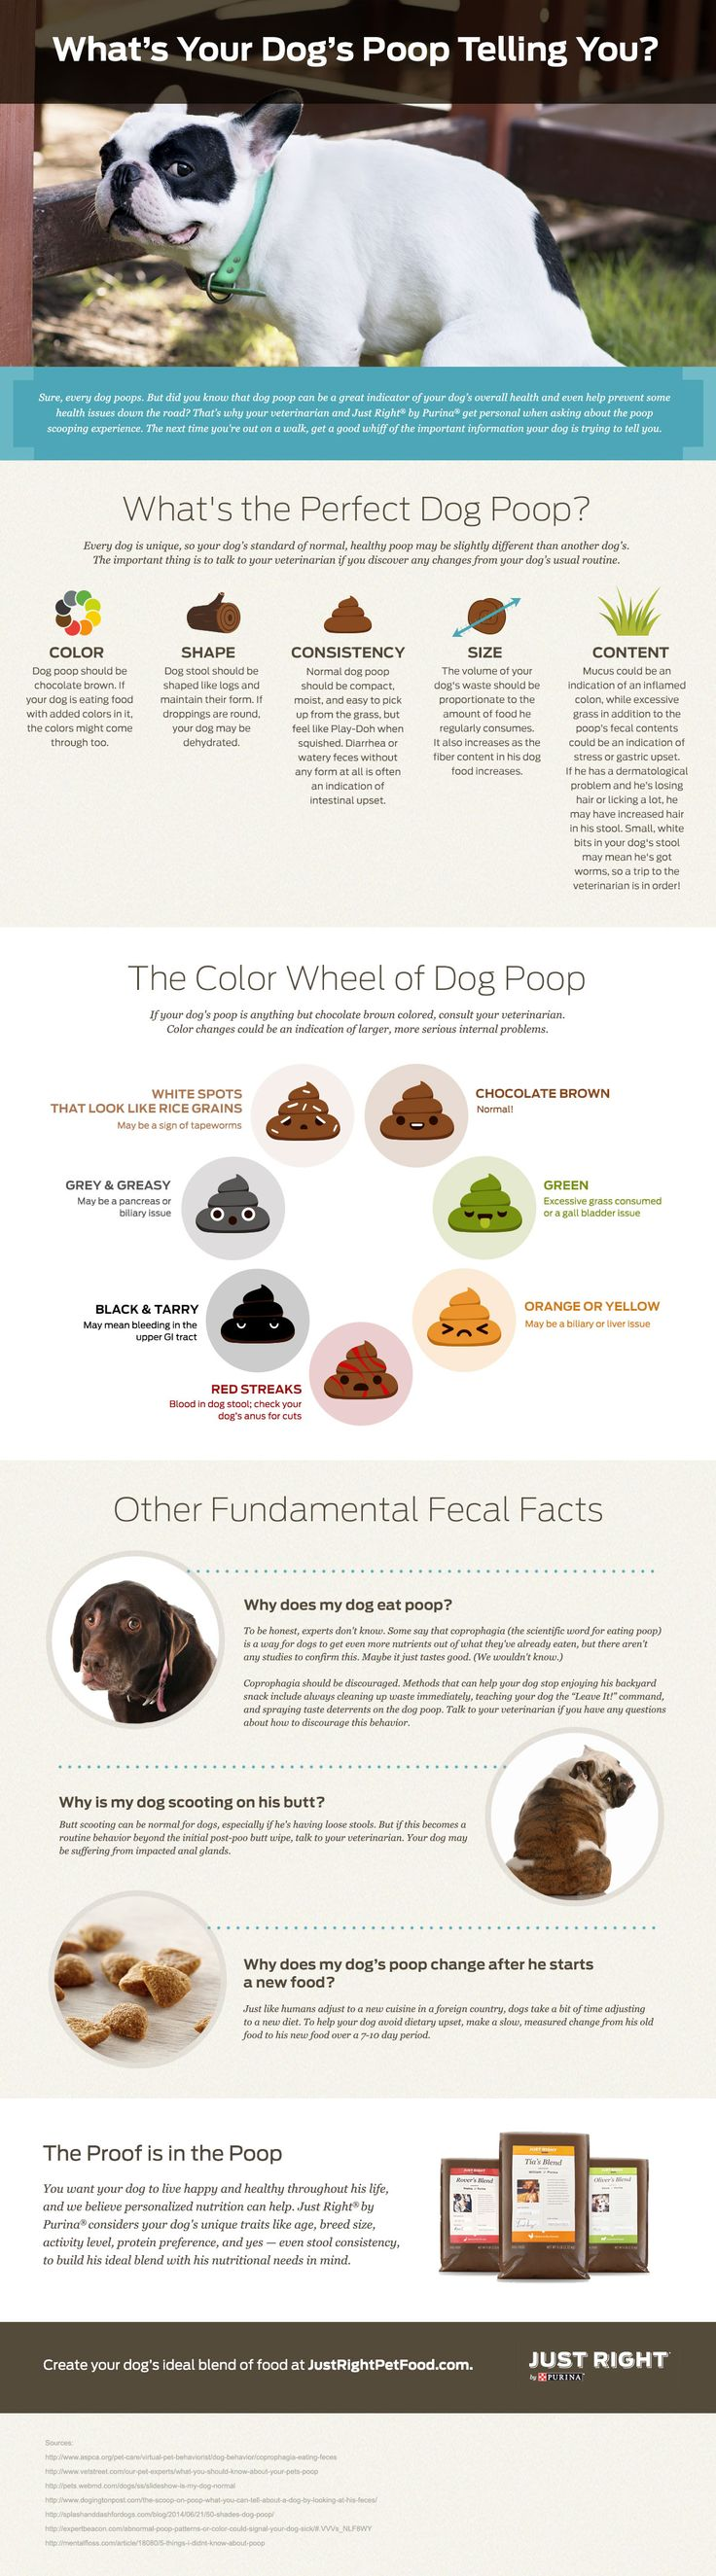 Dog Poop & What It Means | Just Right by Purina